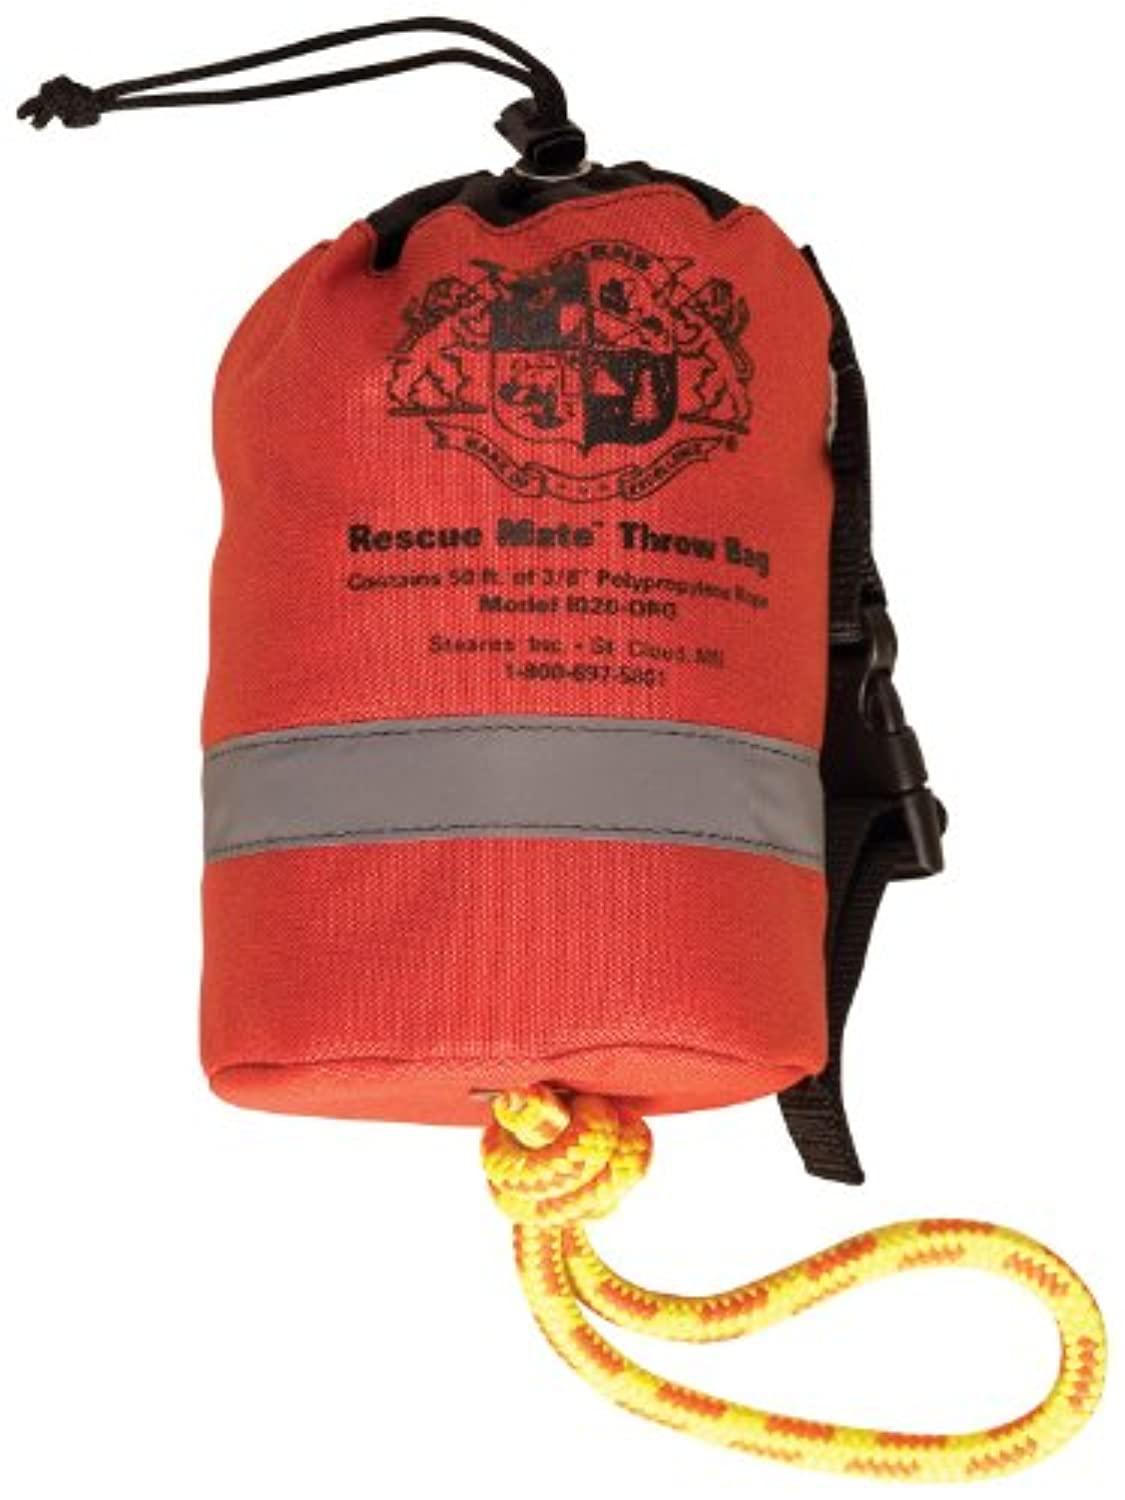 Stearns ® Rescueメイト™ RescueバッグInternationalオレンジ